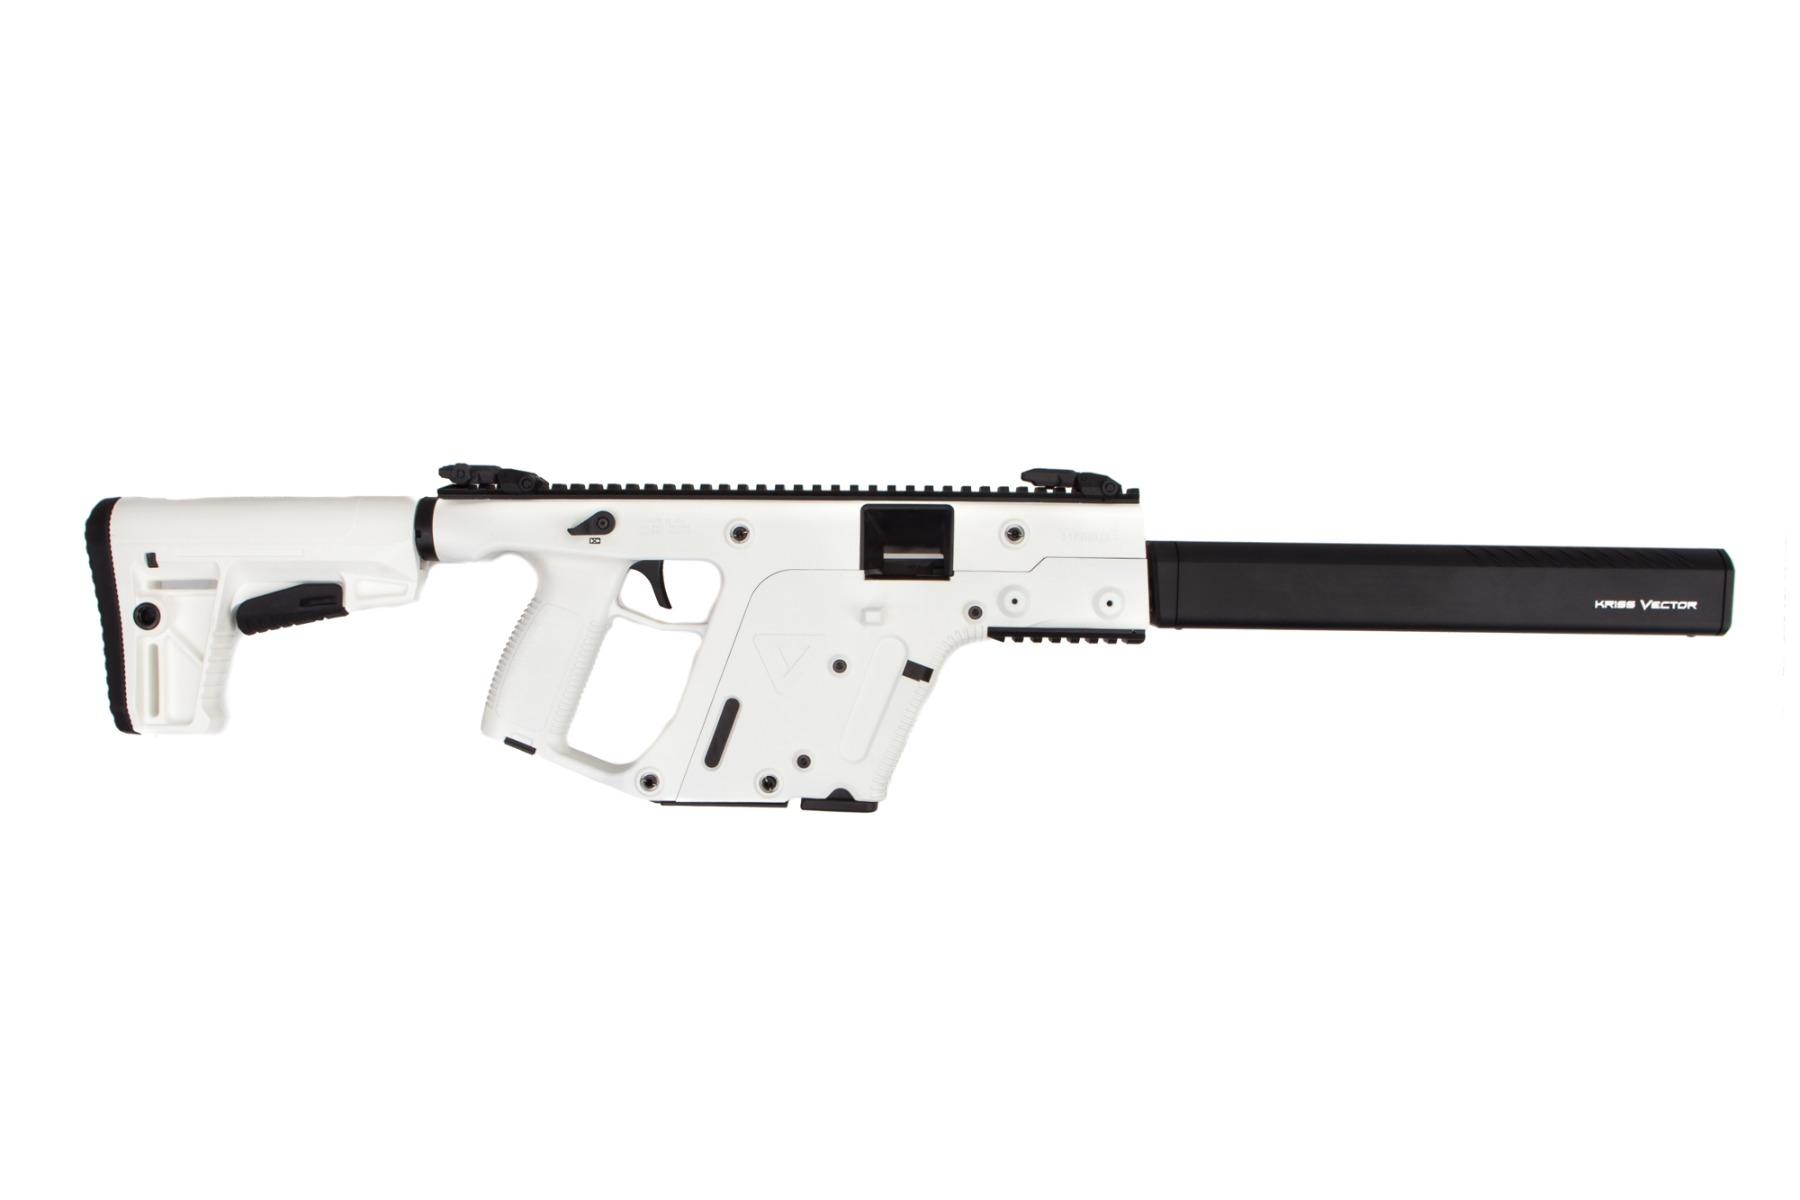 KRISS Vector Picatinny Side Rail Kit - 7 SLOTS - Accessories